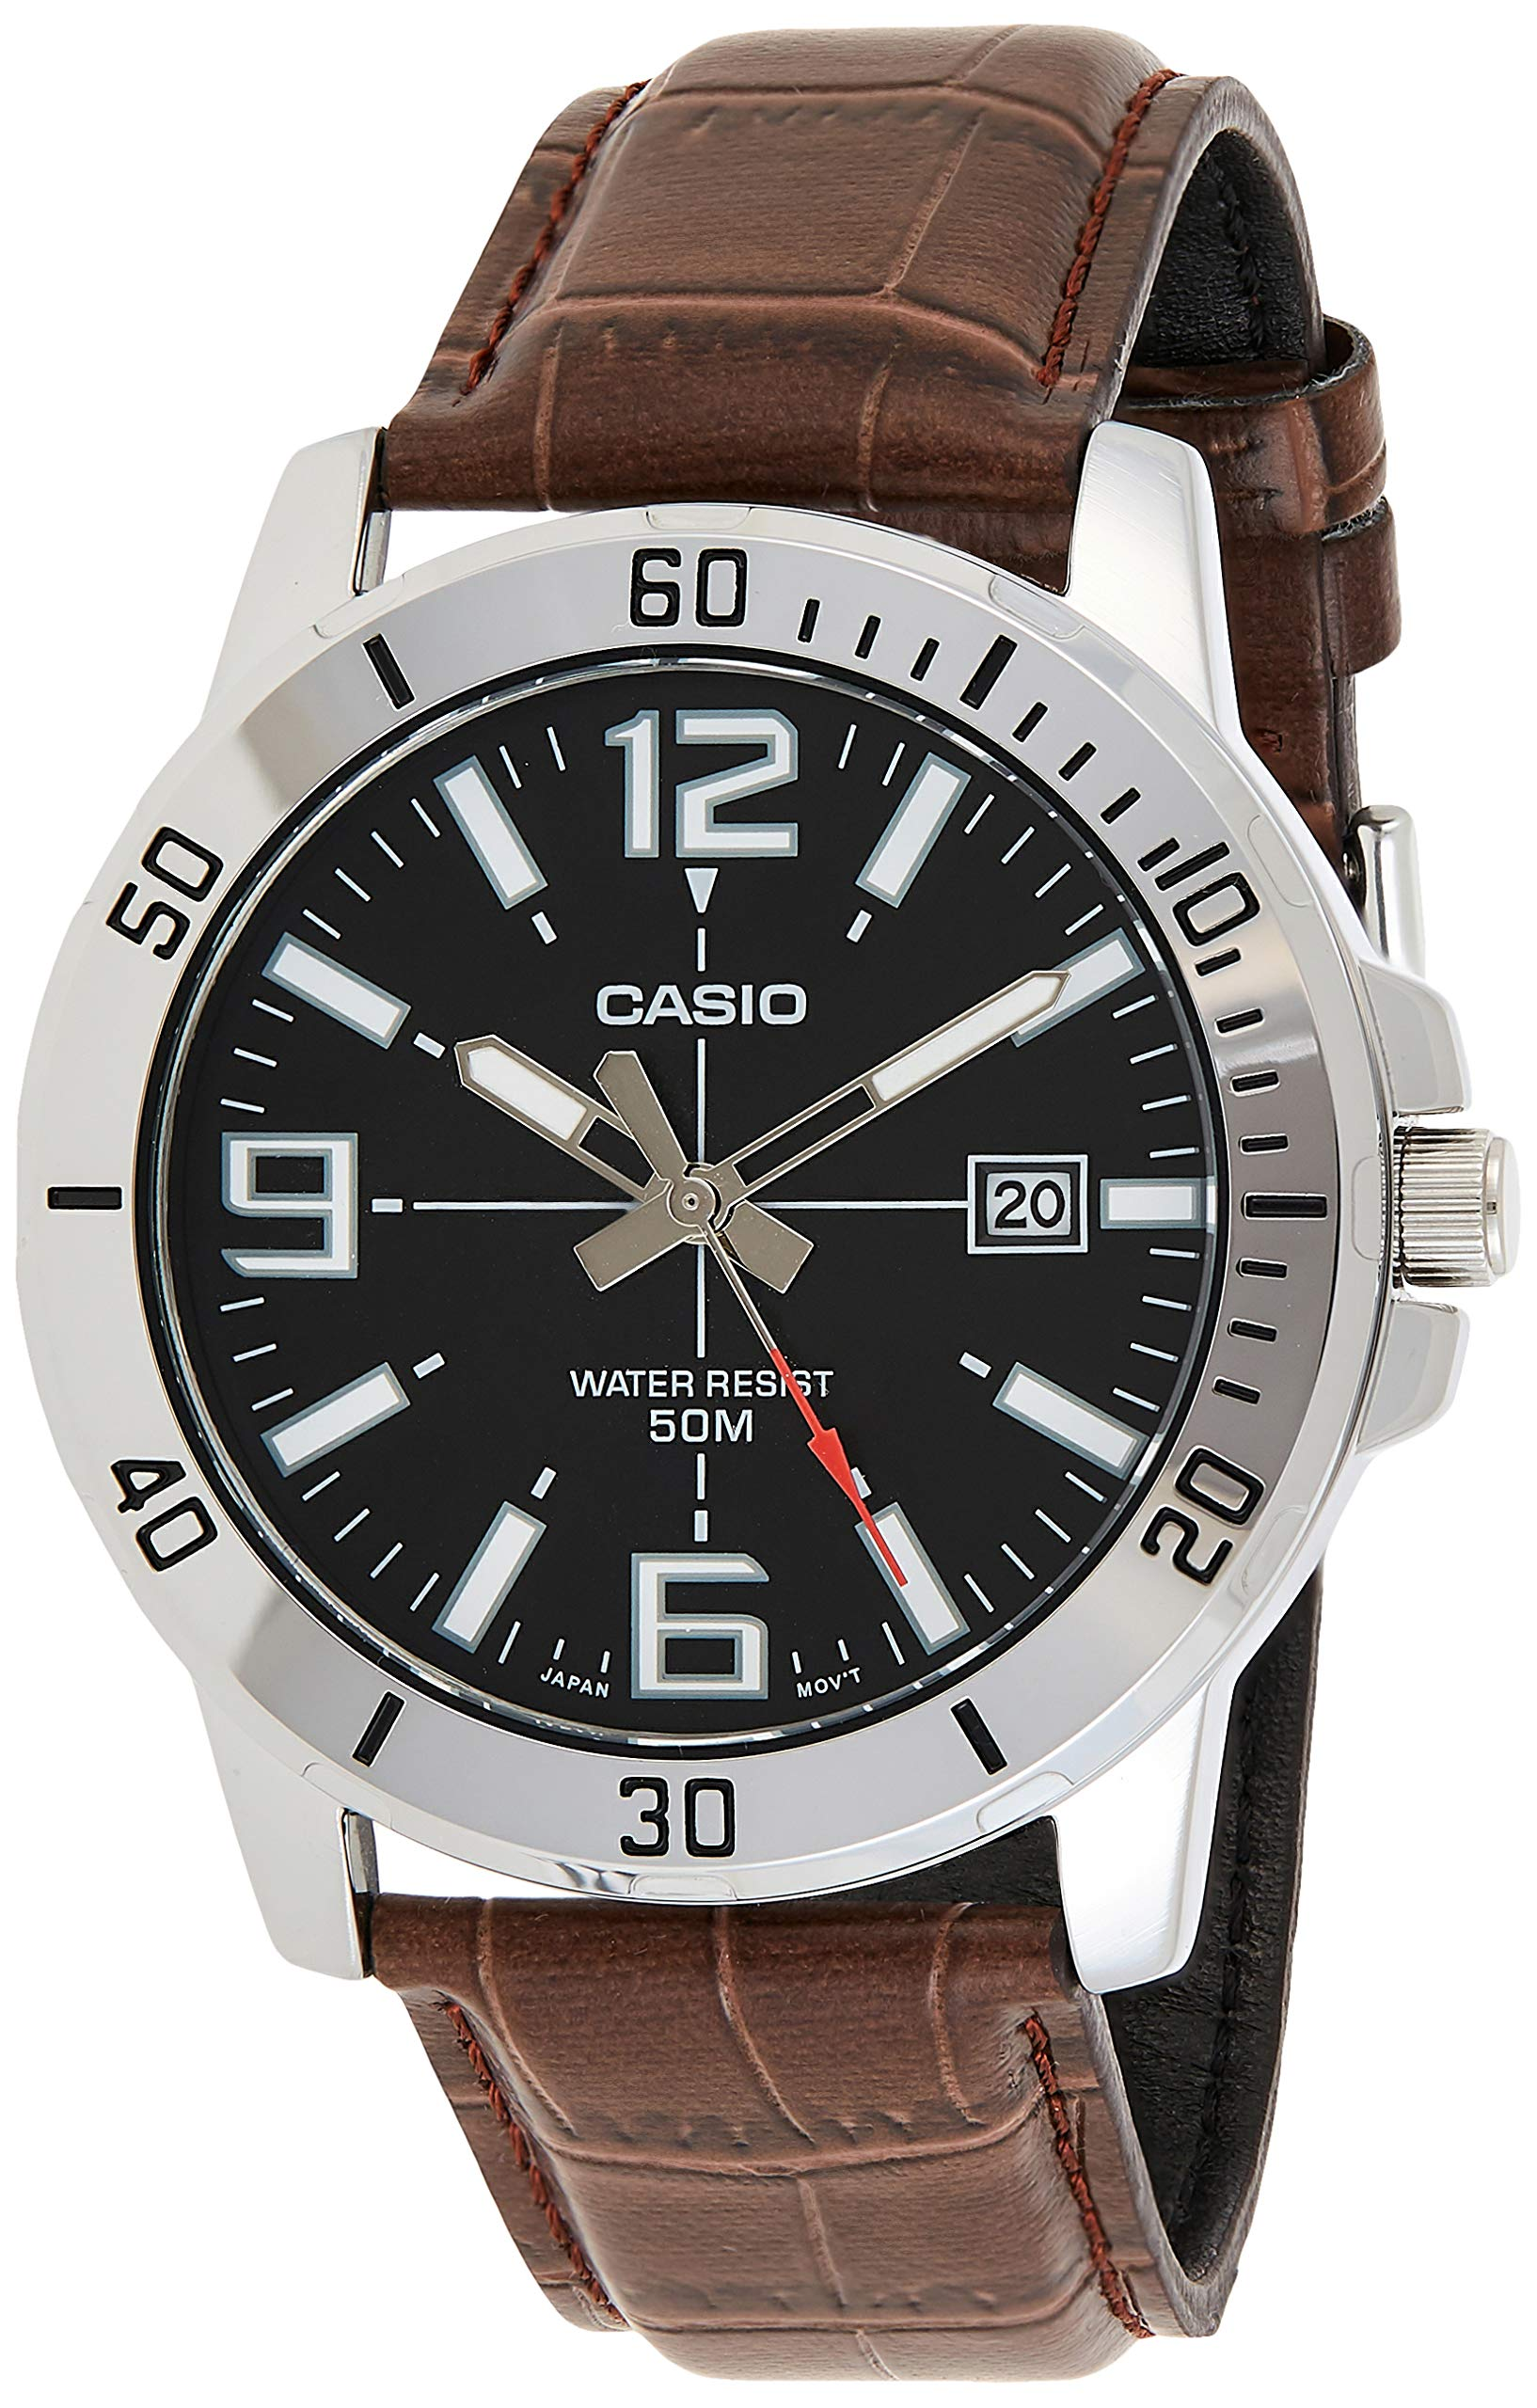 Leather Black Casual Watch For Men - MTP-VD01L-1BVUDF